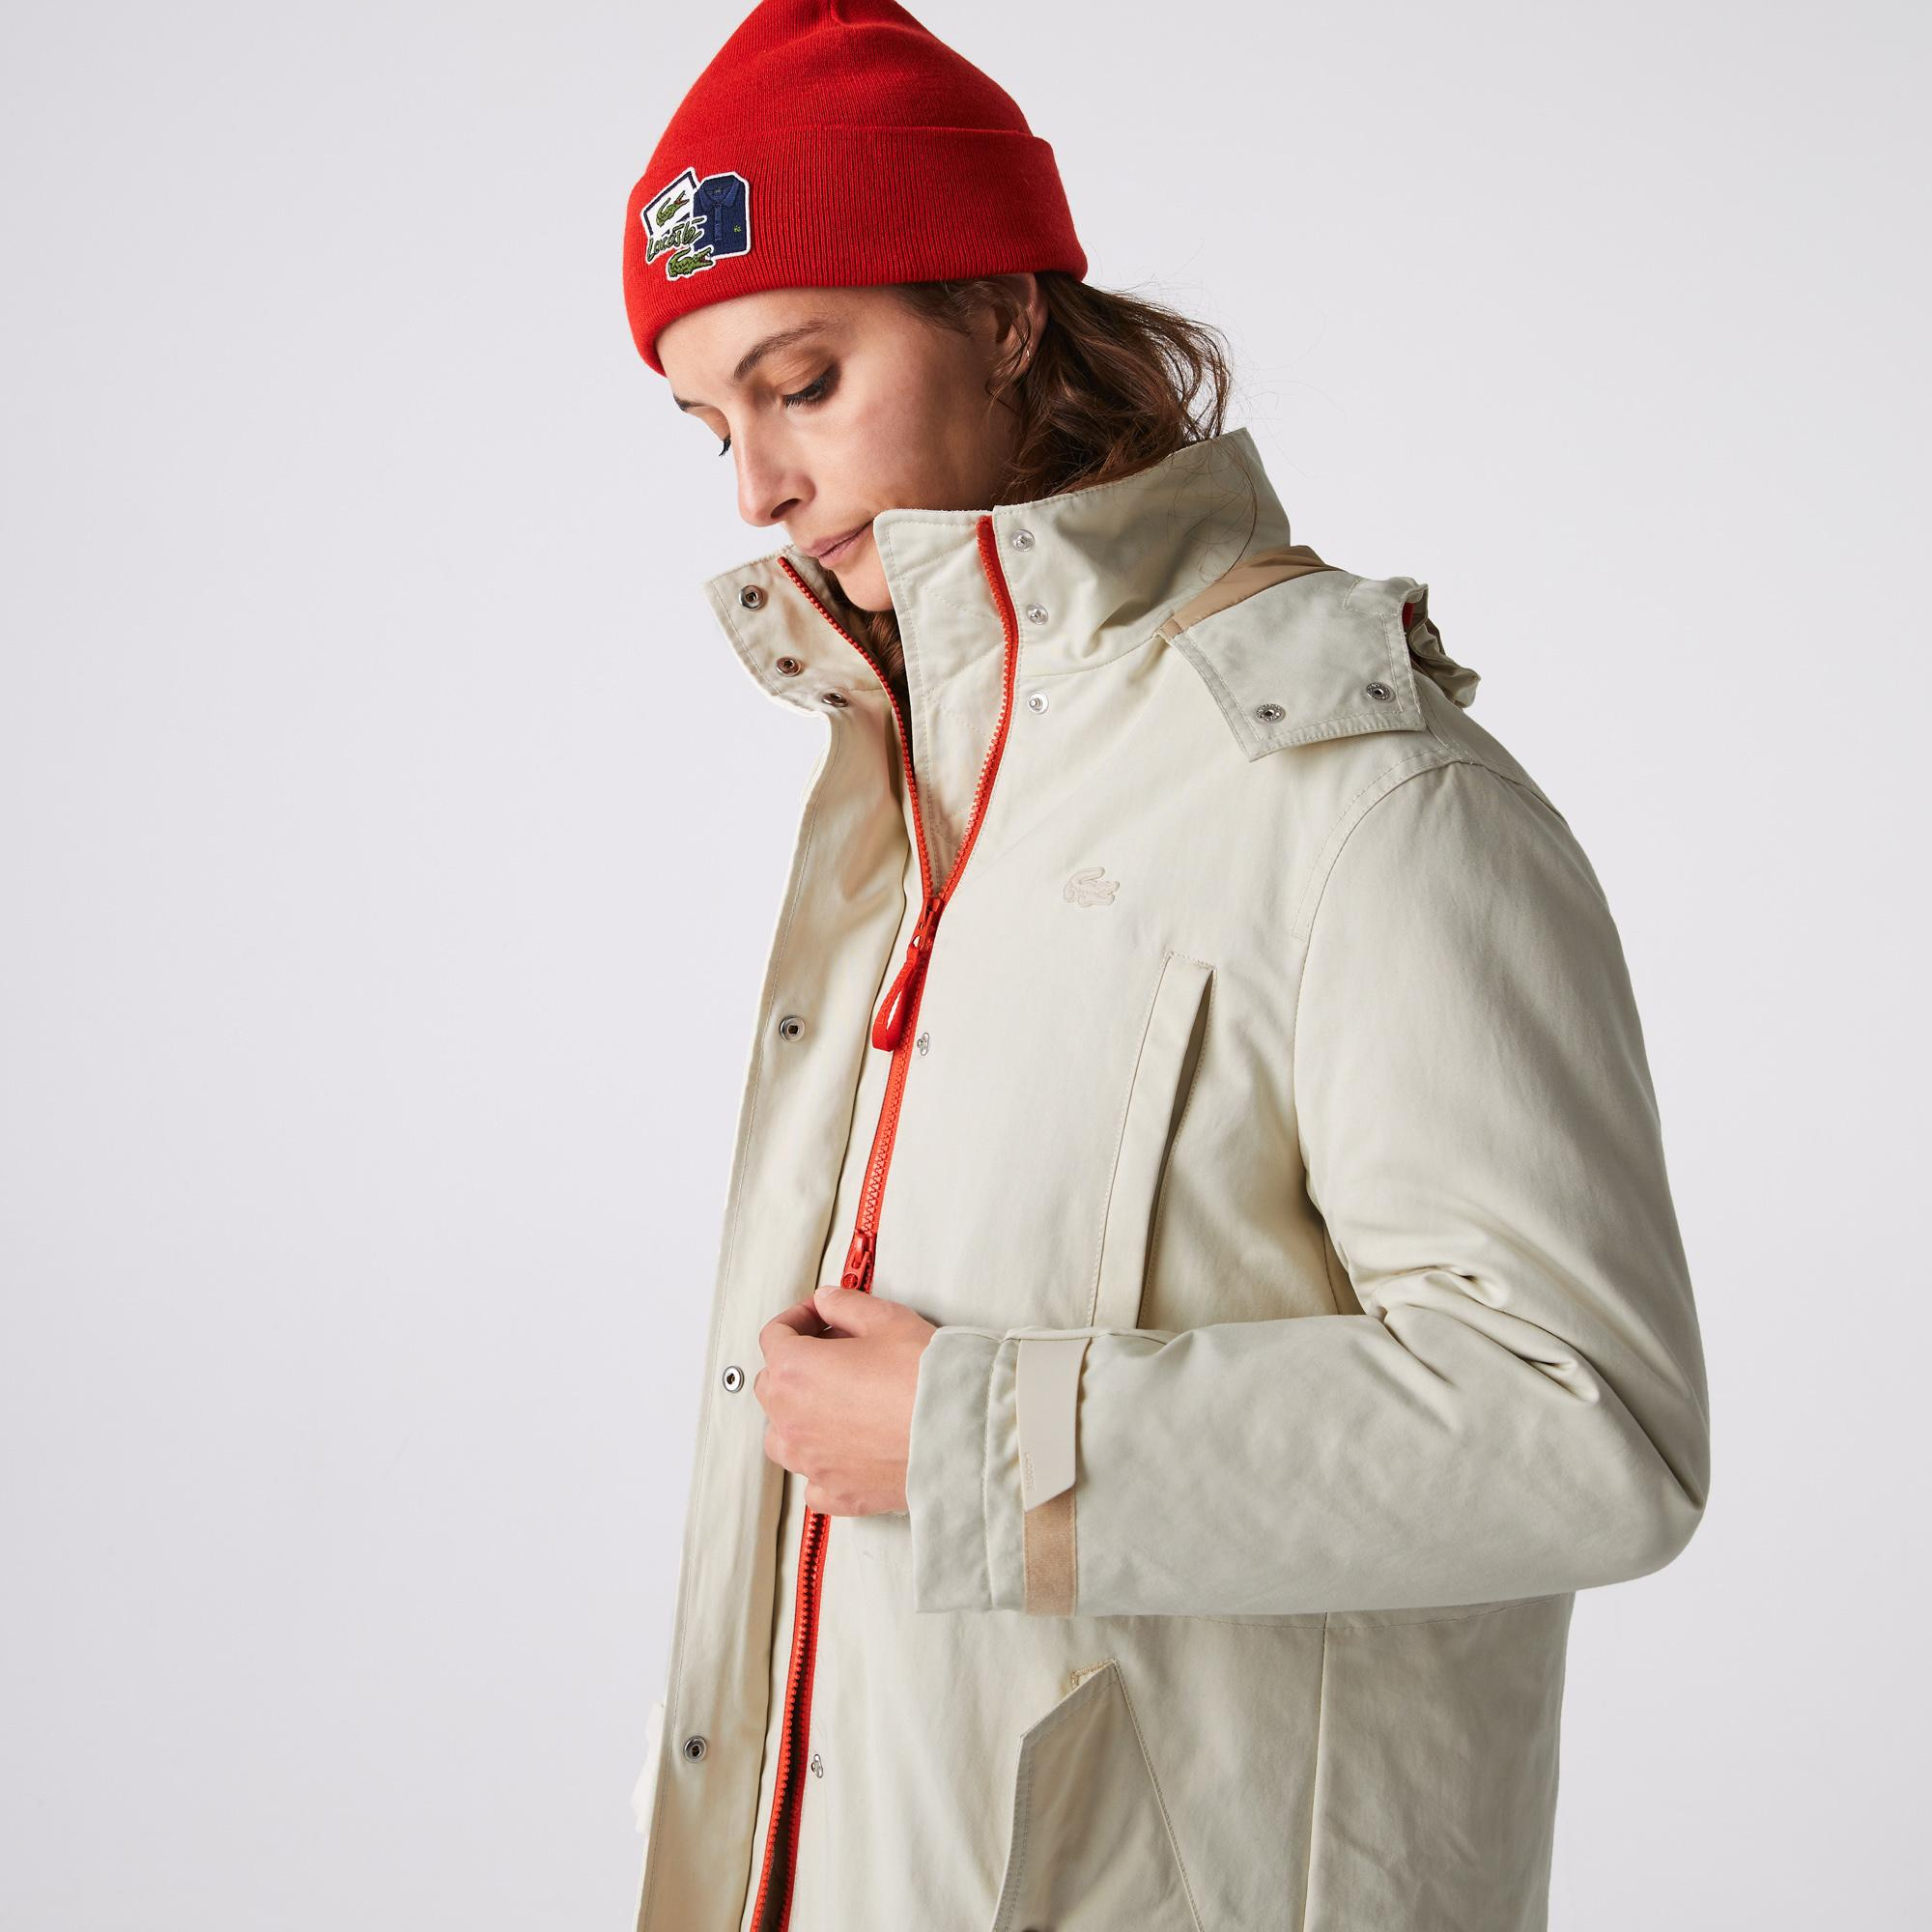 Lacoste Women's Quilted Interior Jacket Water-Resistant 3-in-1 Parka